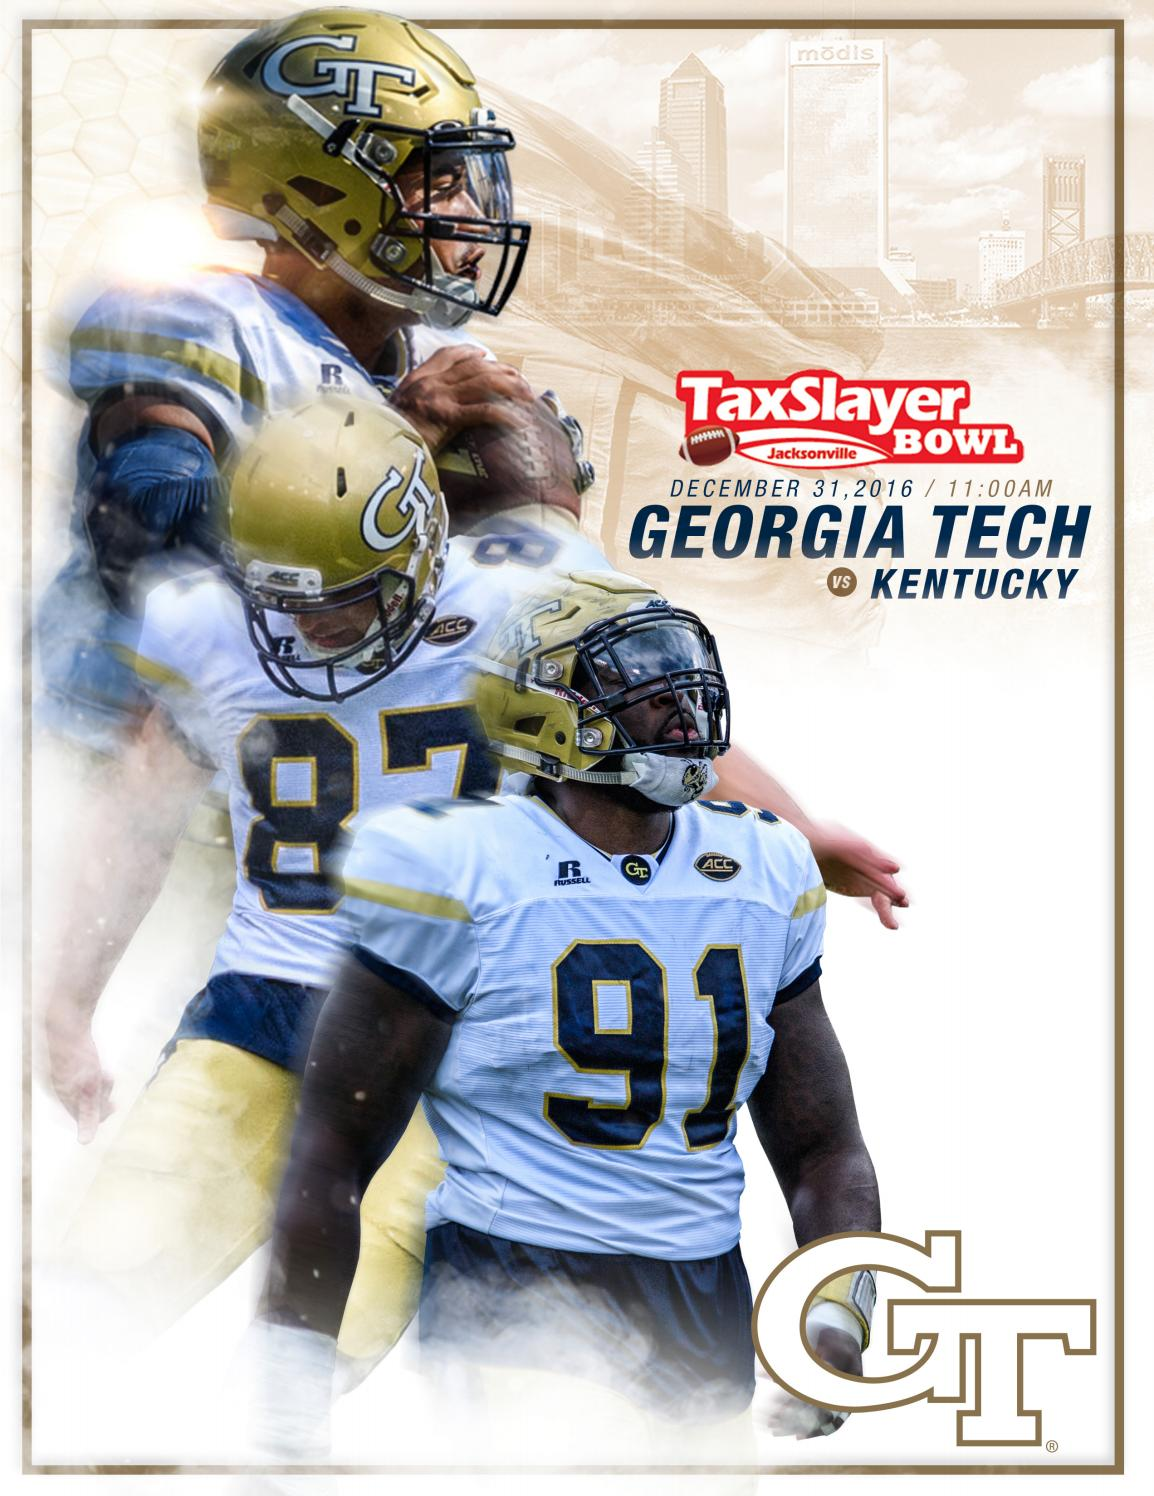 2016 tech football information guide by gtathletics issuu